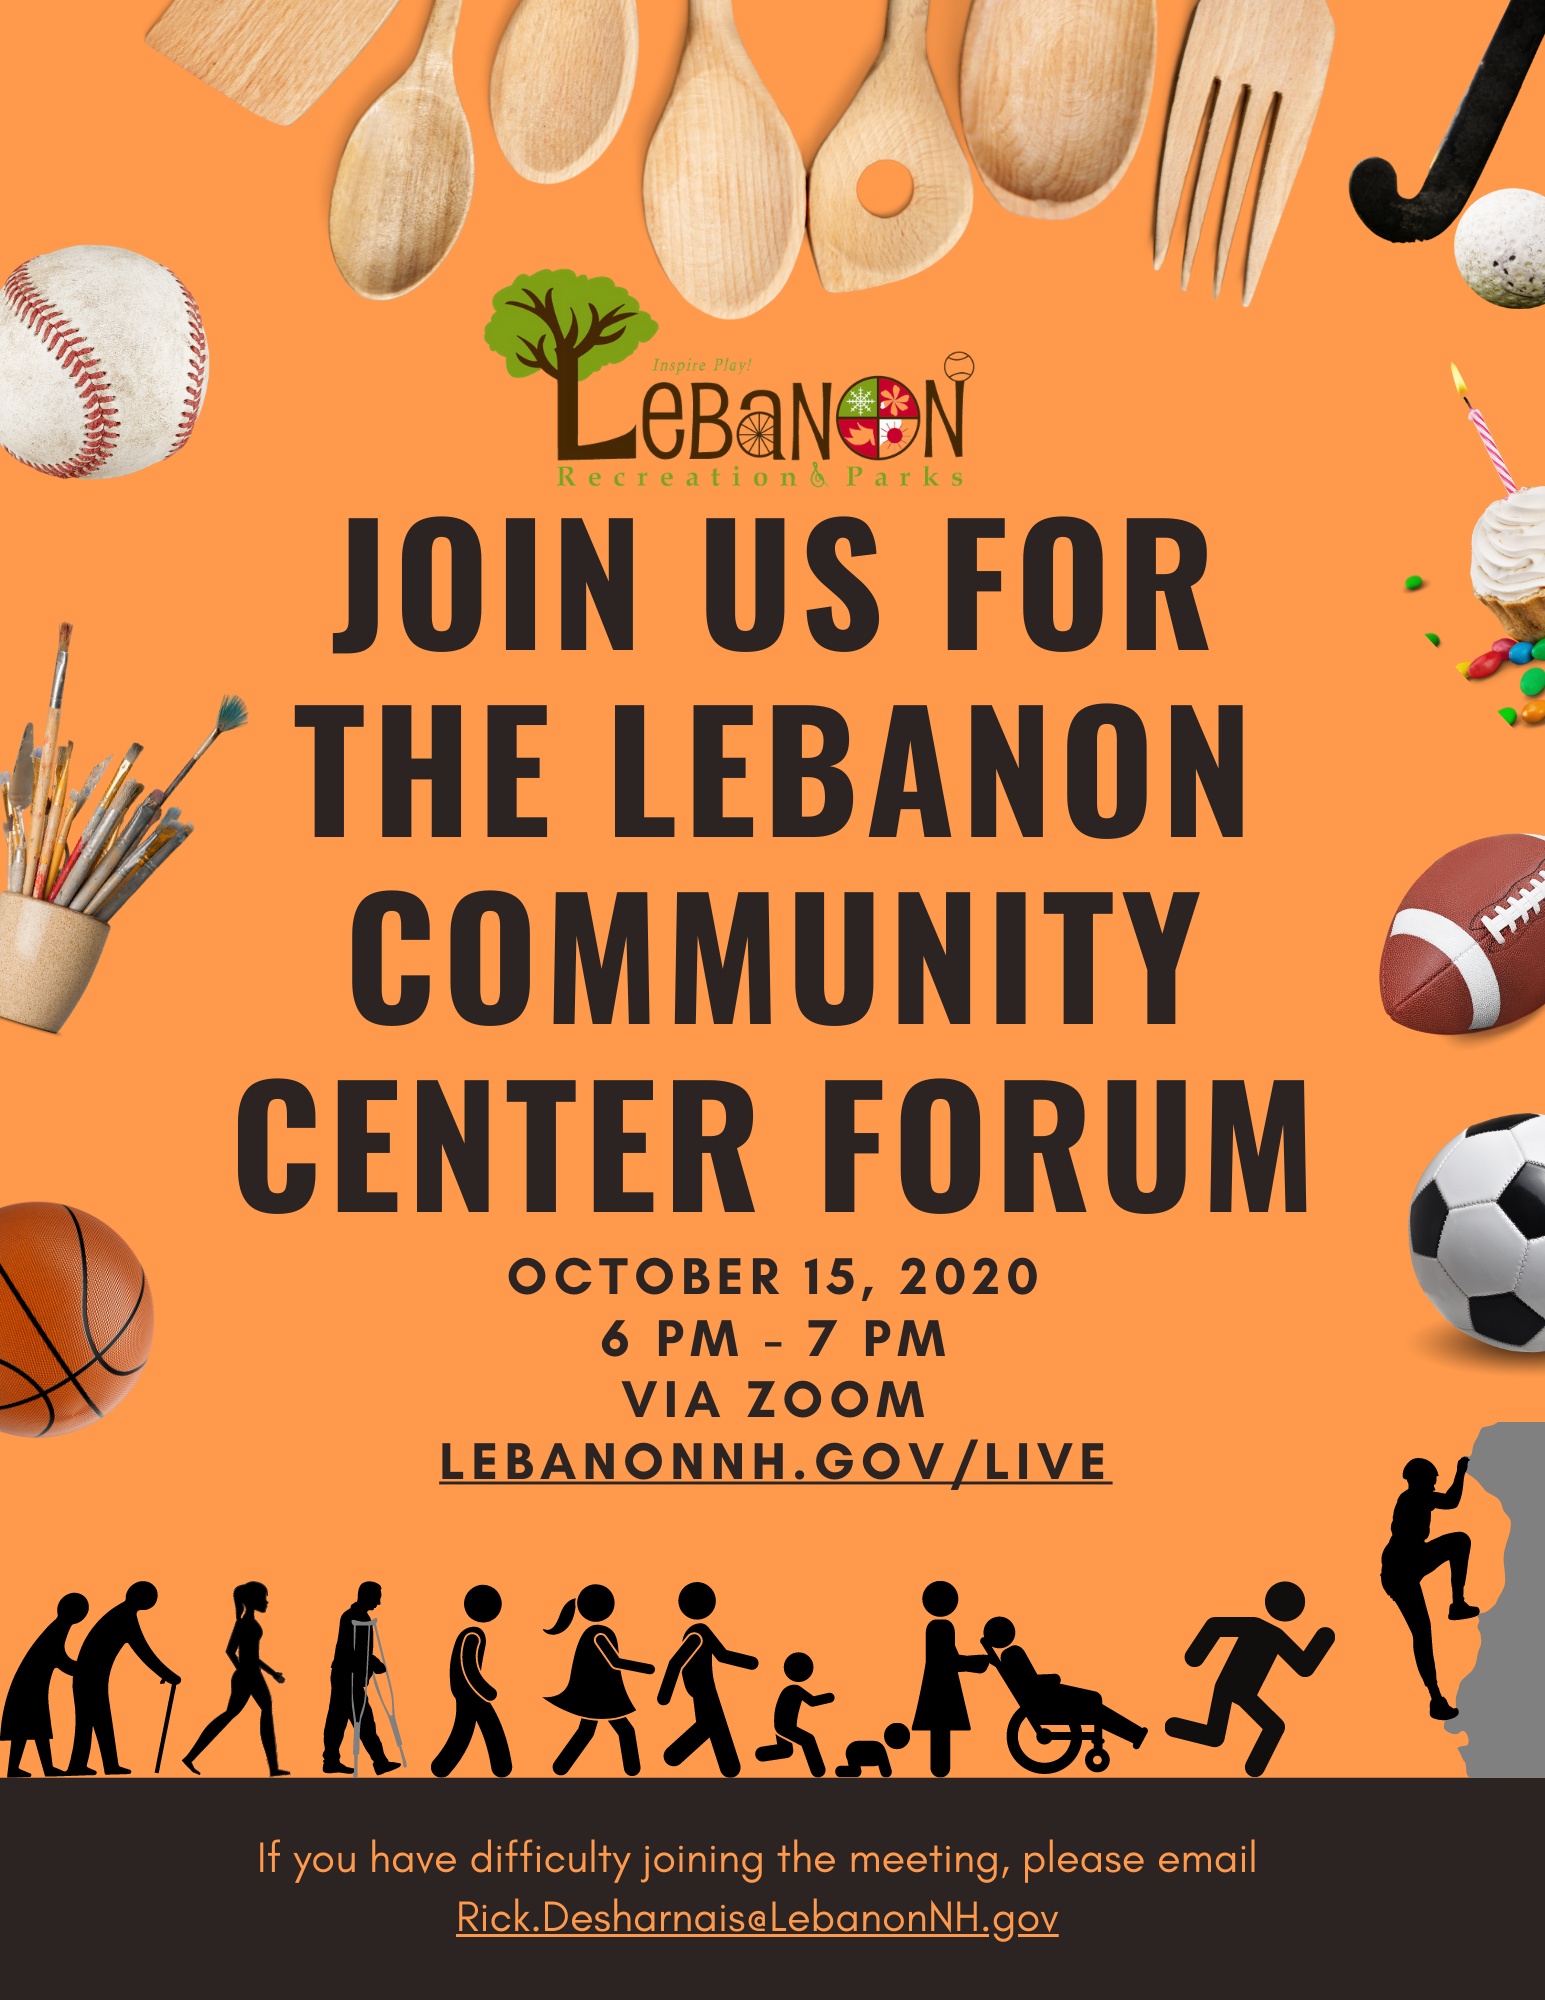 Community Center Forum Flyer on Zoom. Tune in at www.Lebanonnh.gov/live.